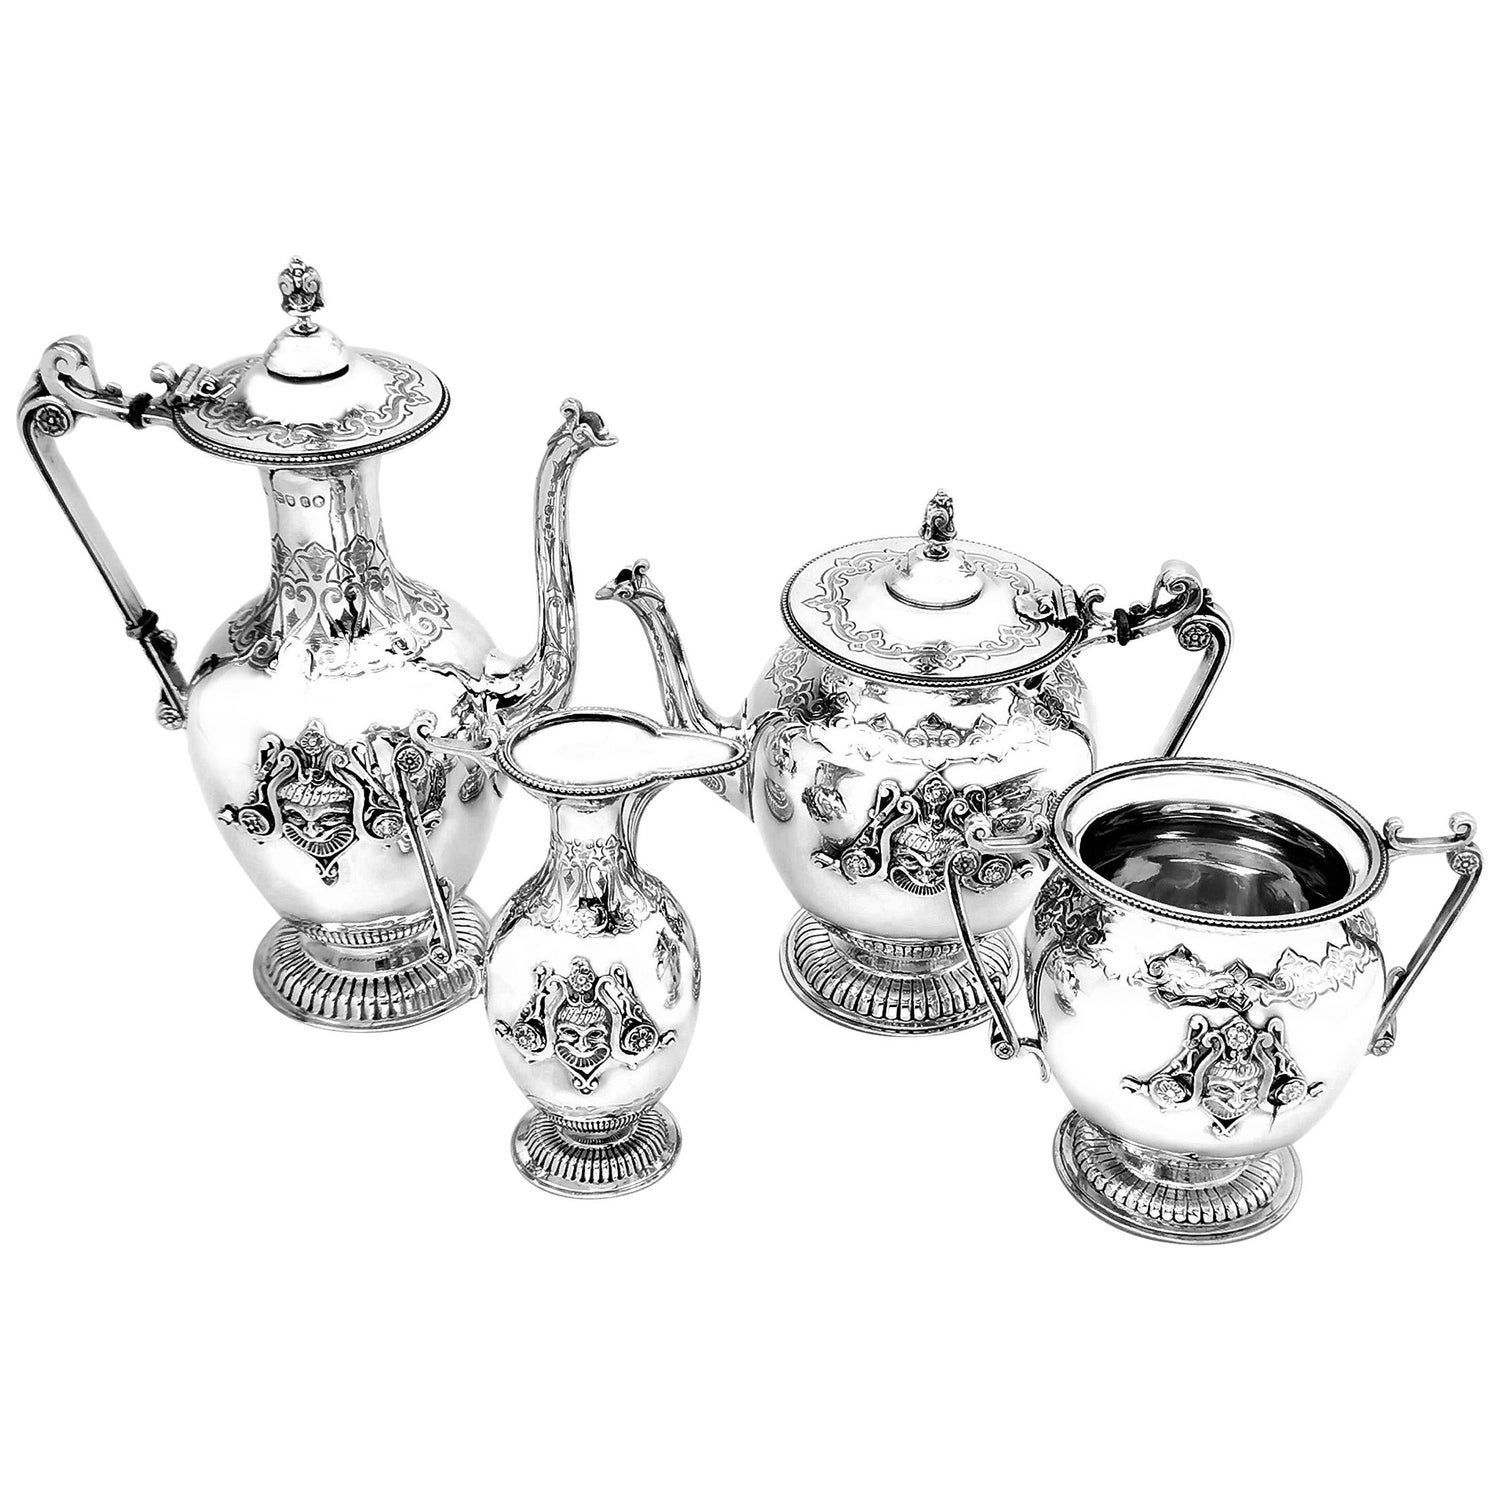 Antique Victorian Silver Four Piece Tea and Coffee Set 1865 Coffee Pot Teapot